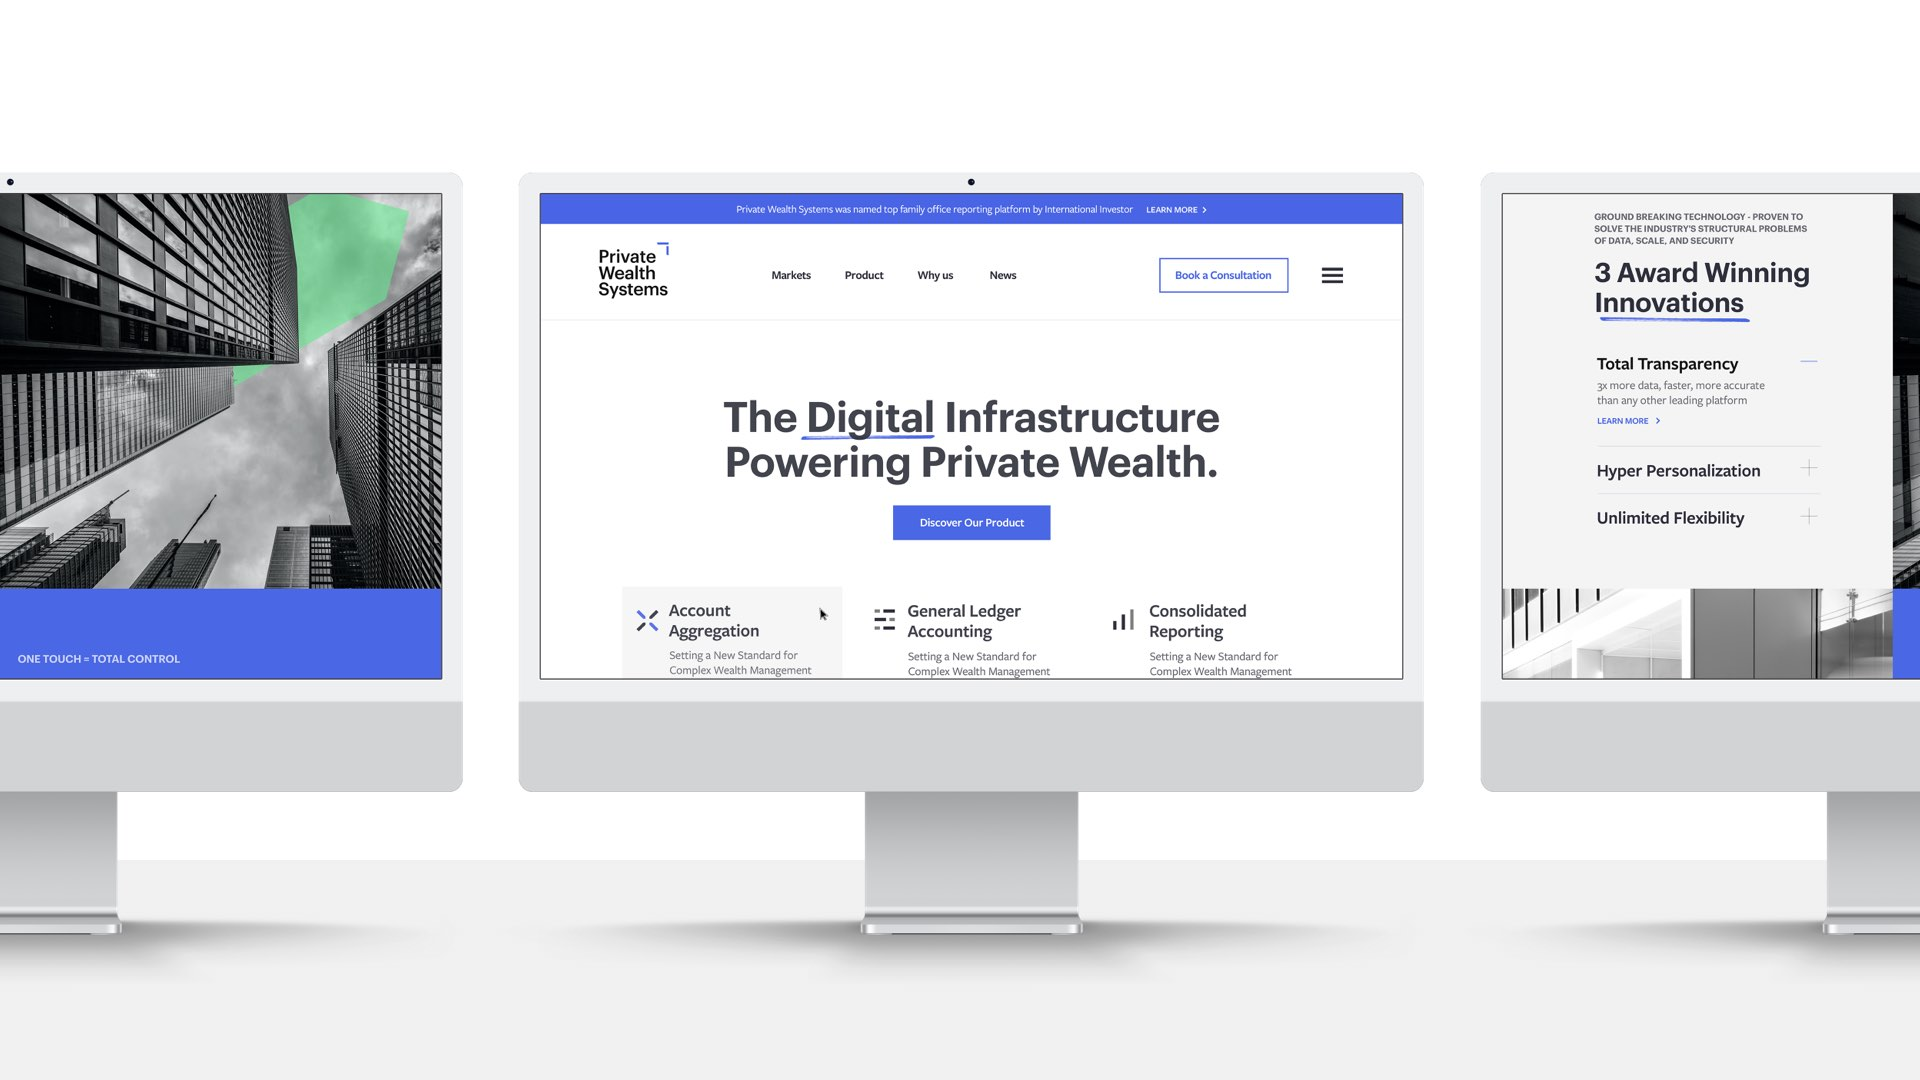 Private Wealth Systems